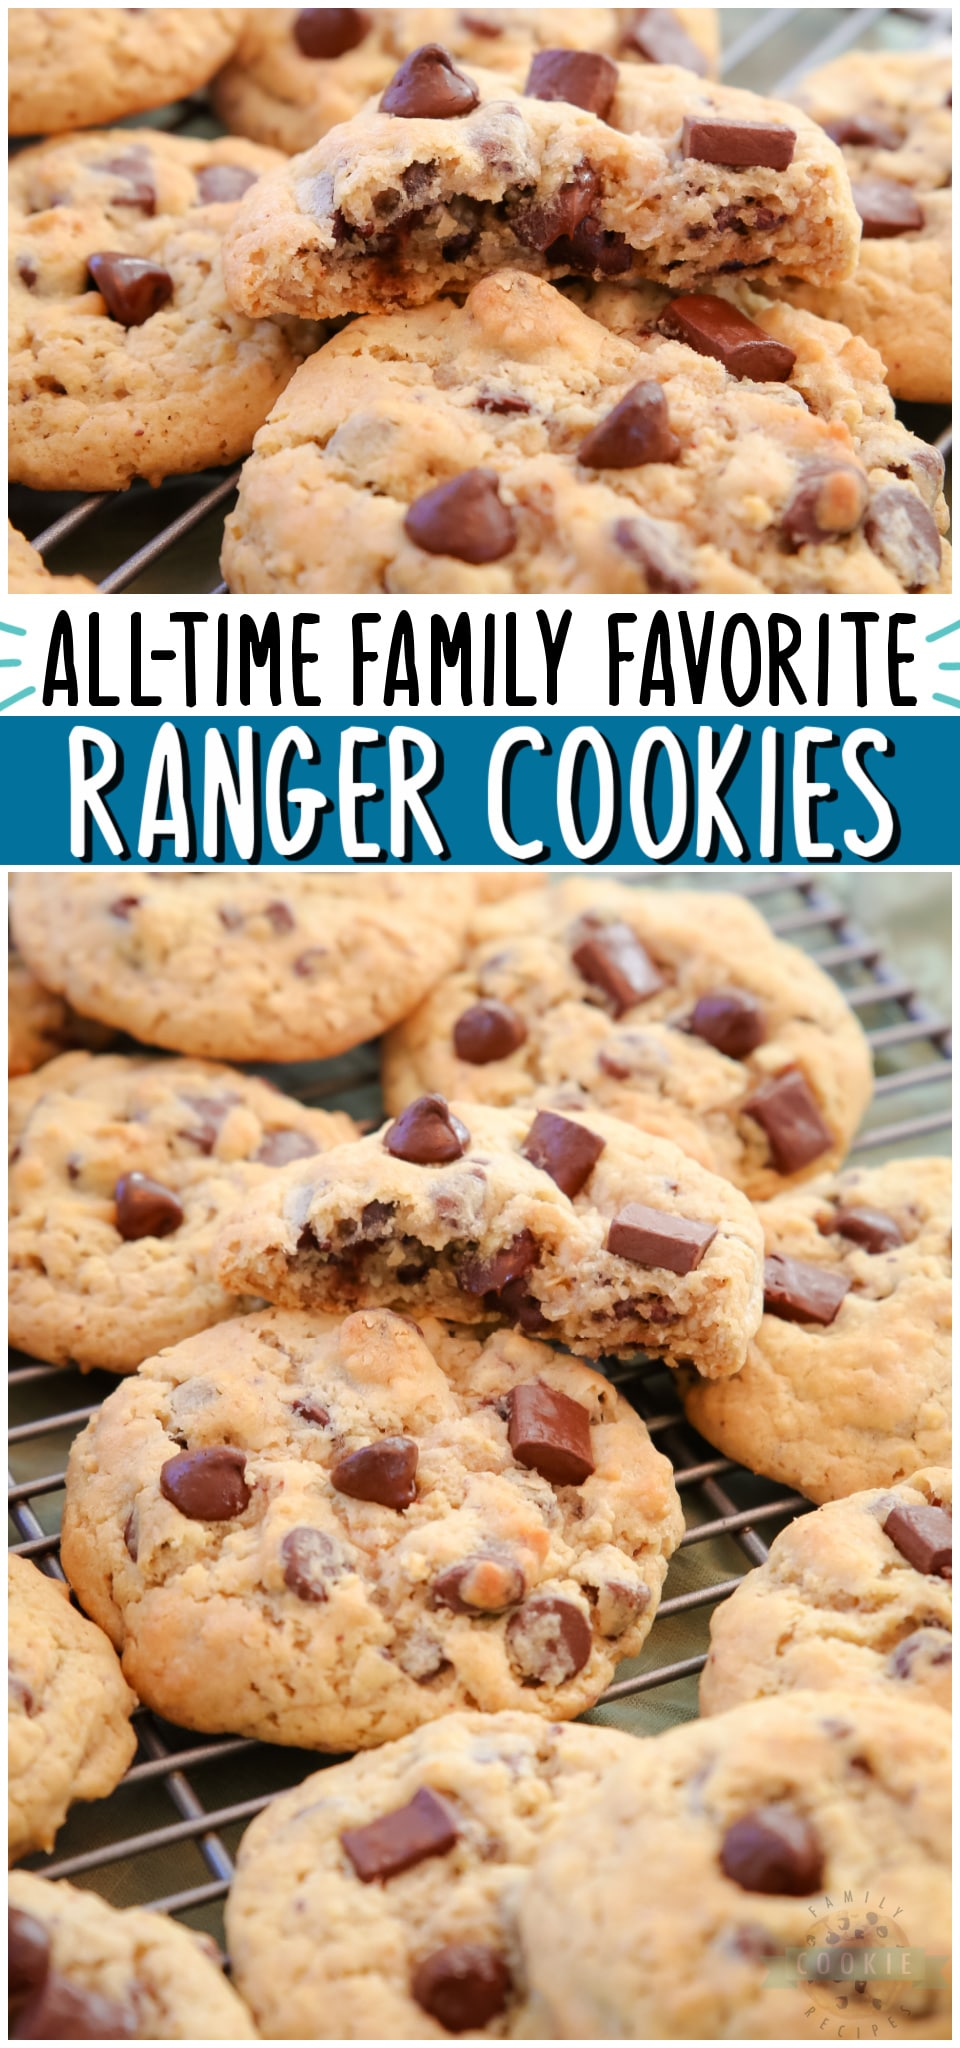 Simple Ranger Cookie recipe made with quick oats and lots of chocolate chips! Soft & chewy chocolate chip cookie with added oats for fantastic flavor & texture. #cookies #ranger #cowboy #oatmeal #baking #desserts #easyrecipe from FAMILY COOKIE RECIPES via @familycookierecipes